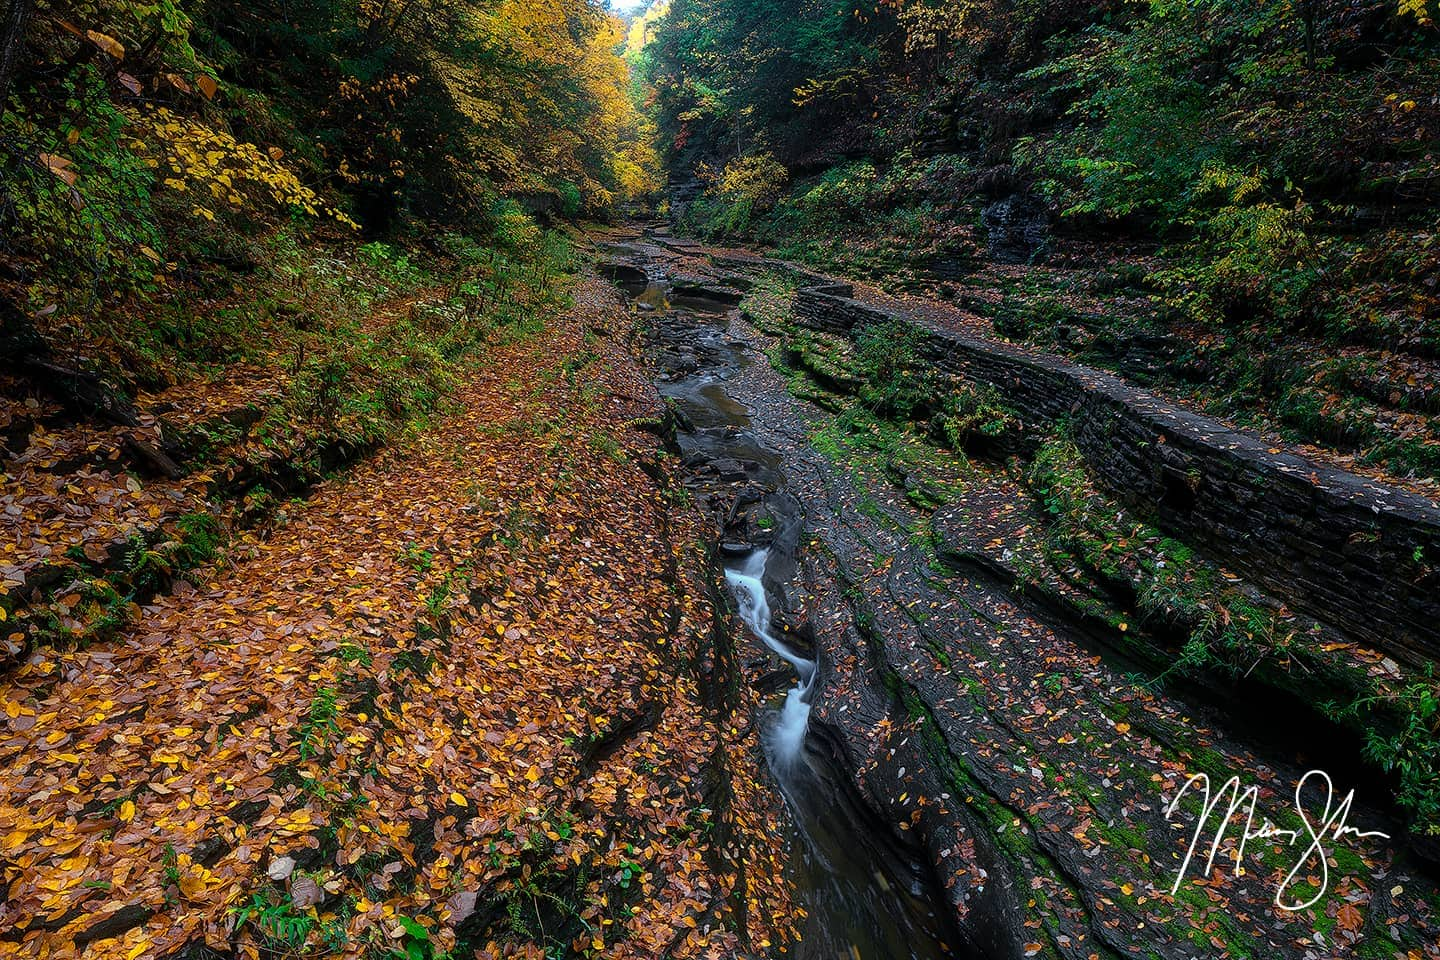 Open edition fine art print of Autumn at Watkins Glen State Park from Mickey Shannon Photography. Location: Watkins Glen State Park, NY